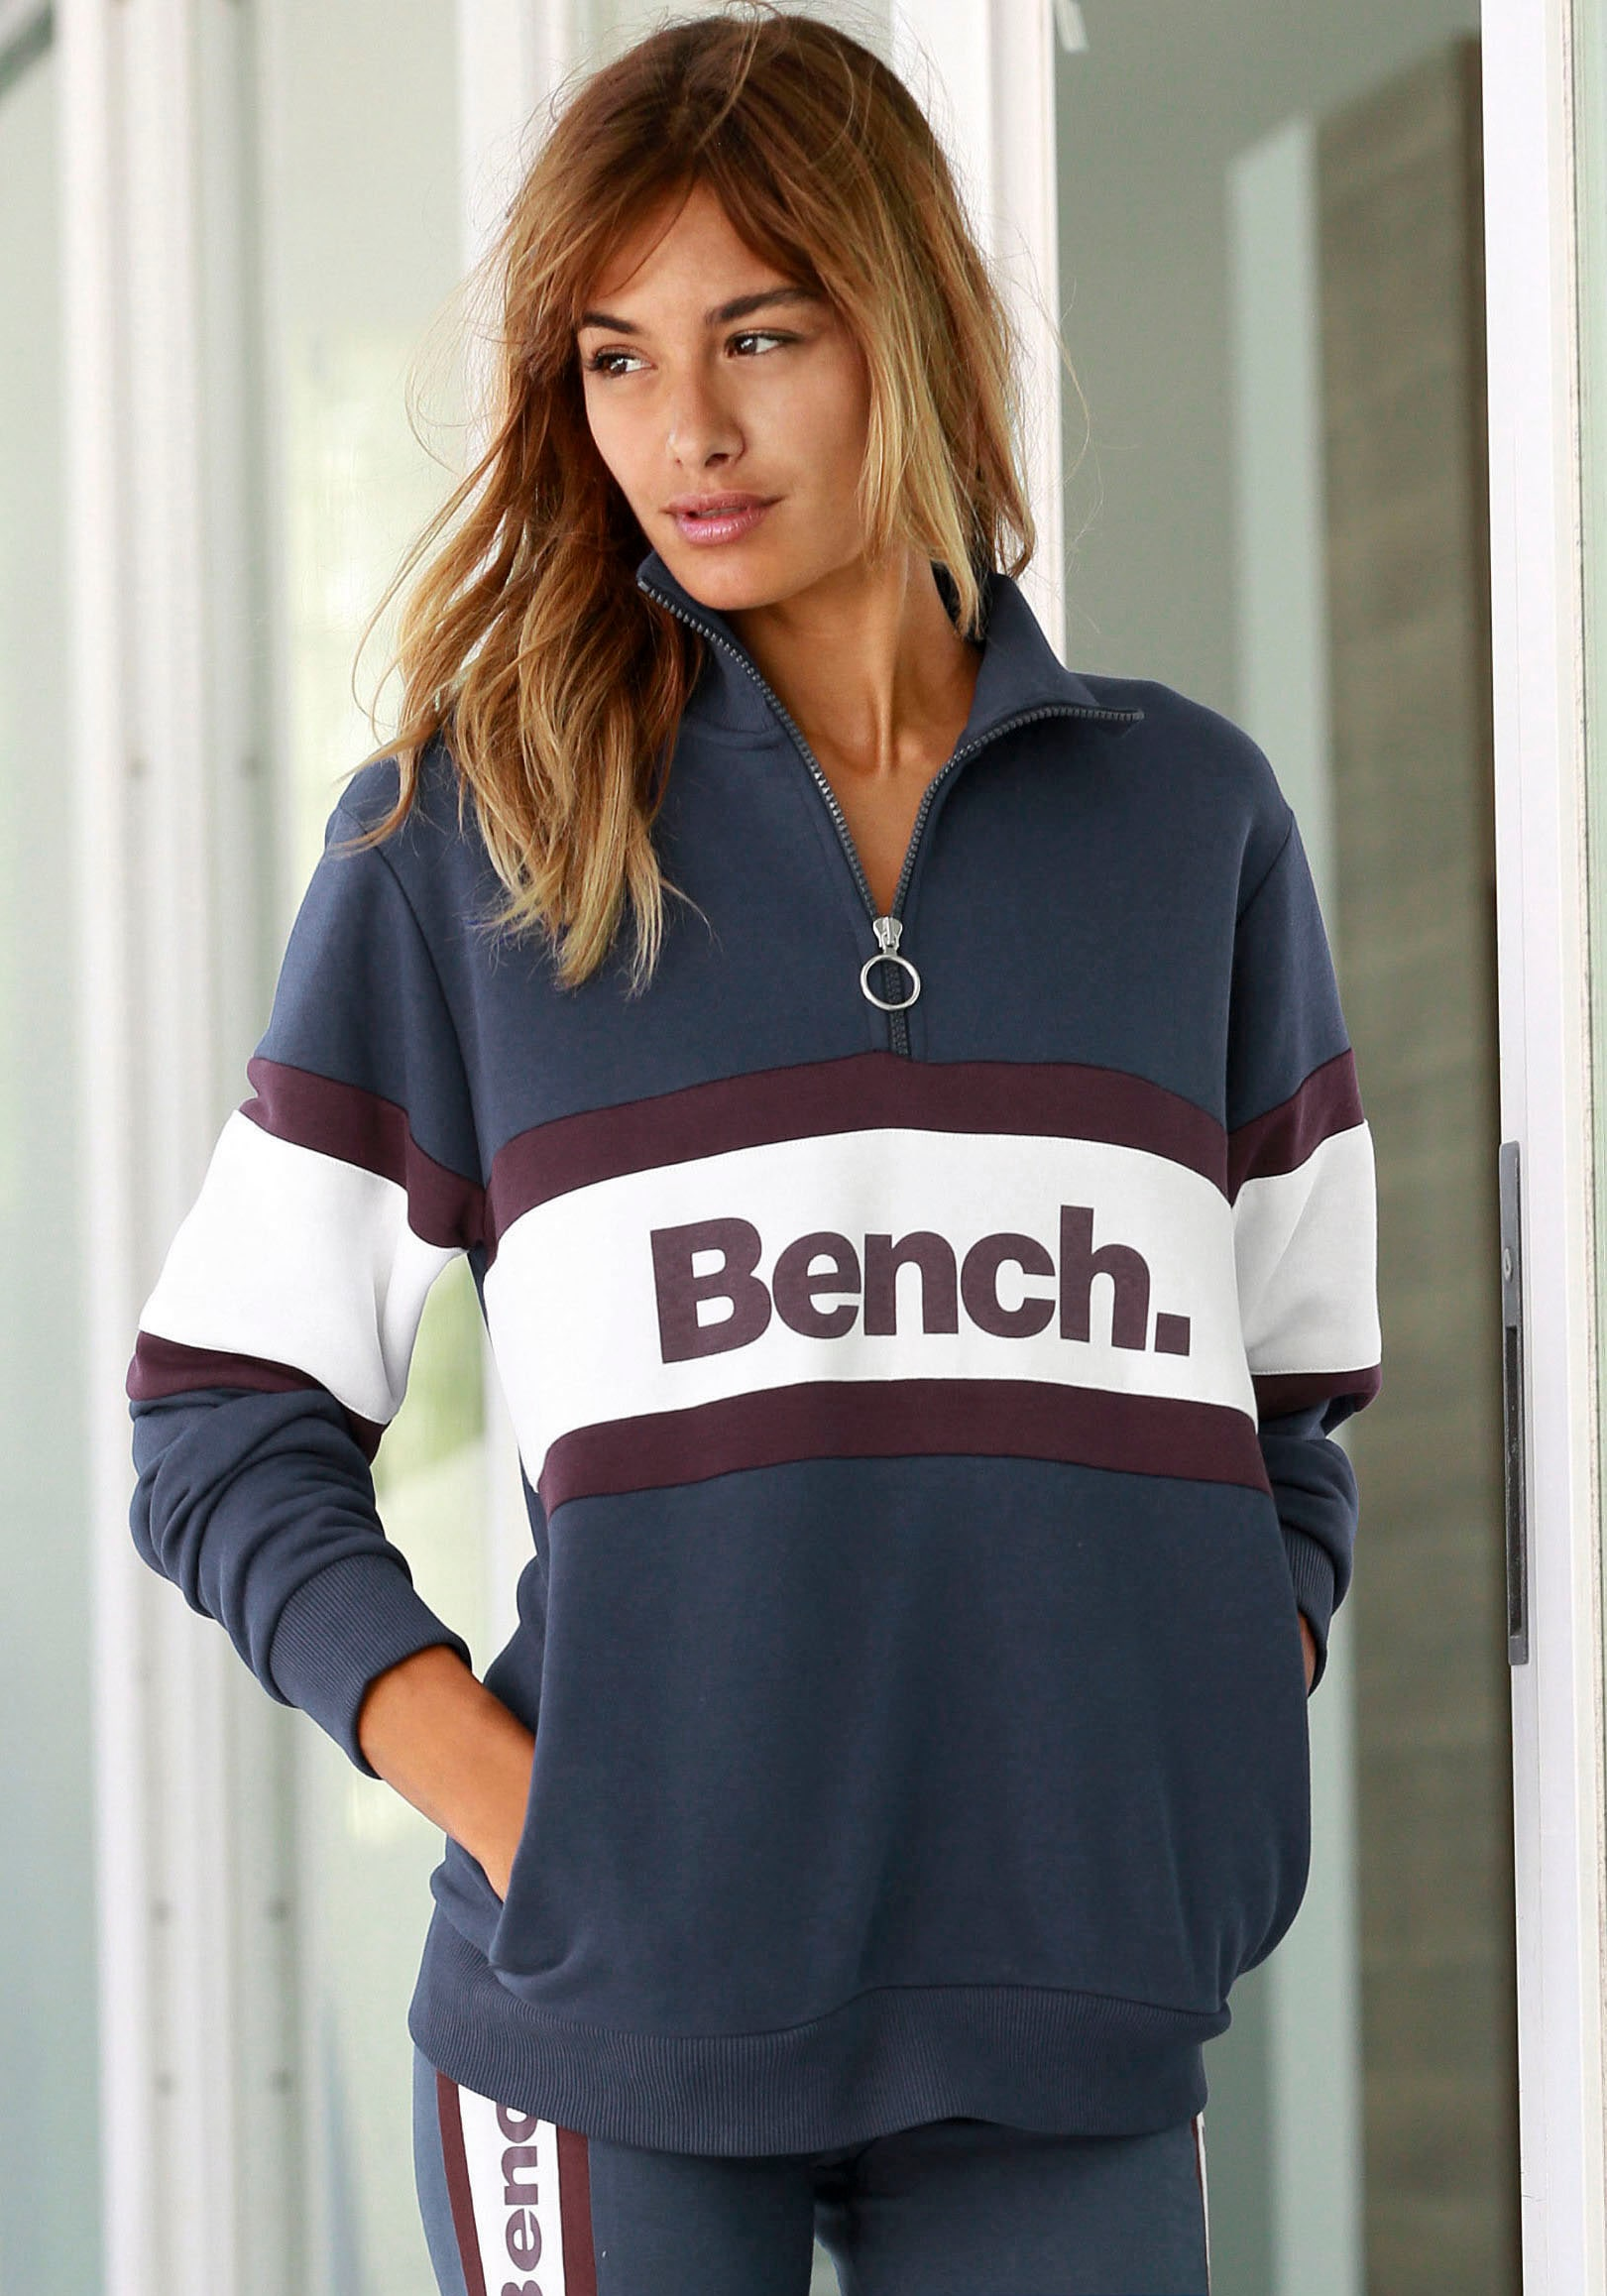 Bench. Sweatshirt im OTTO Online Shop